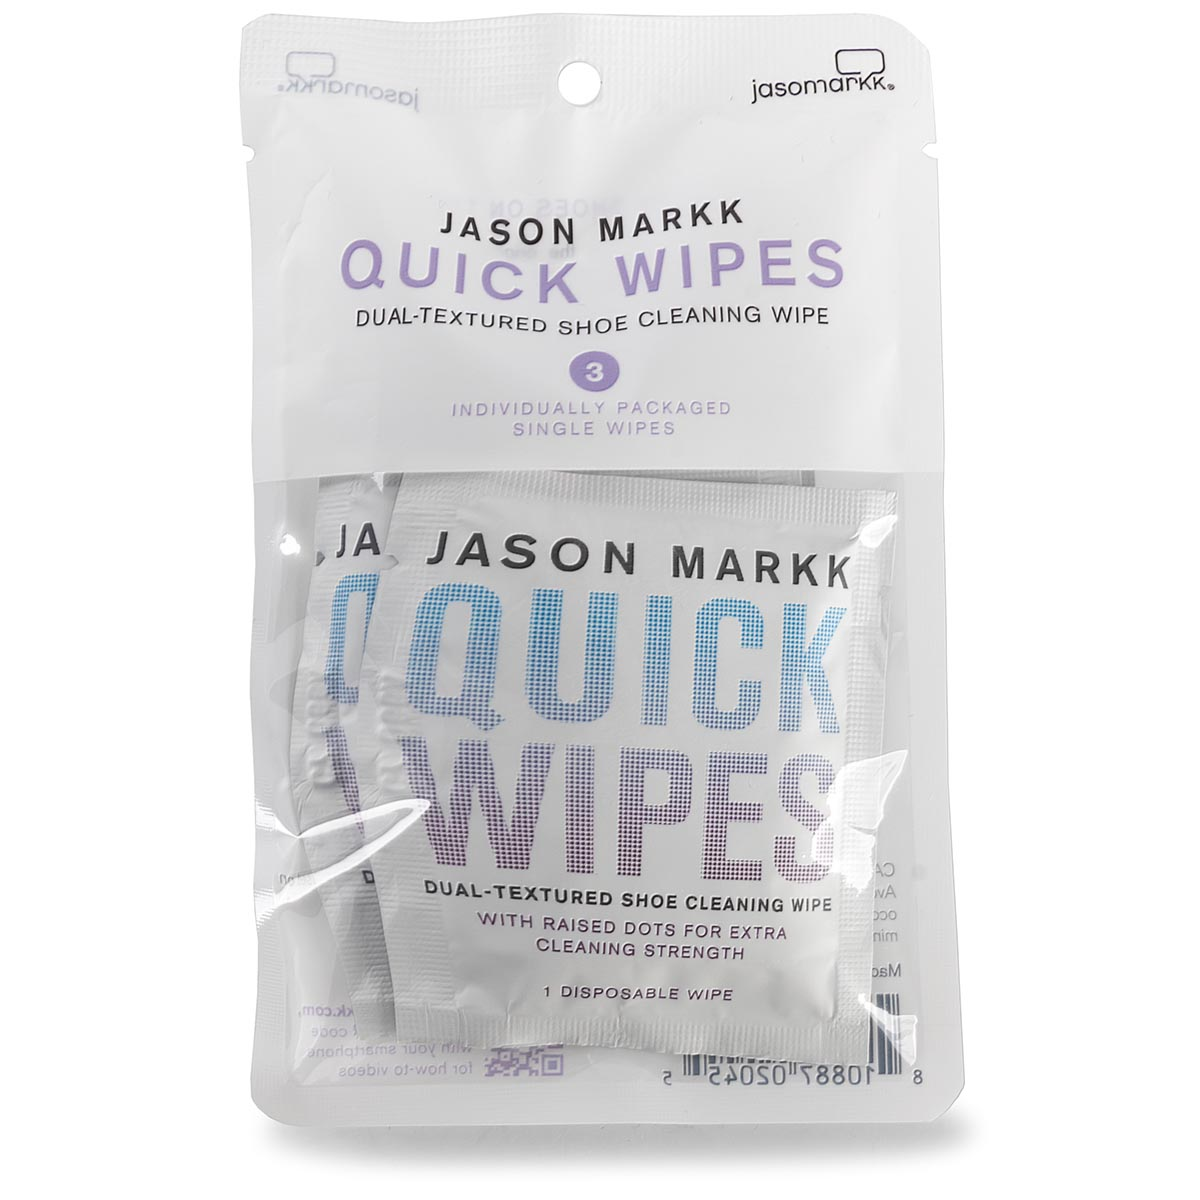 Czyścik do obuwia JASON MARKK - Quick Wipes JM0417